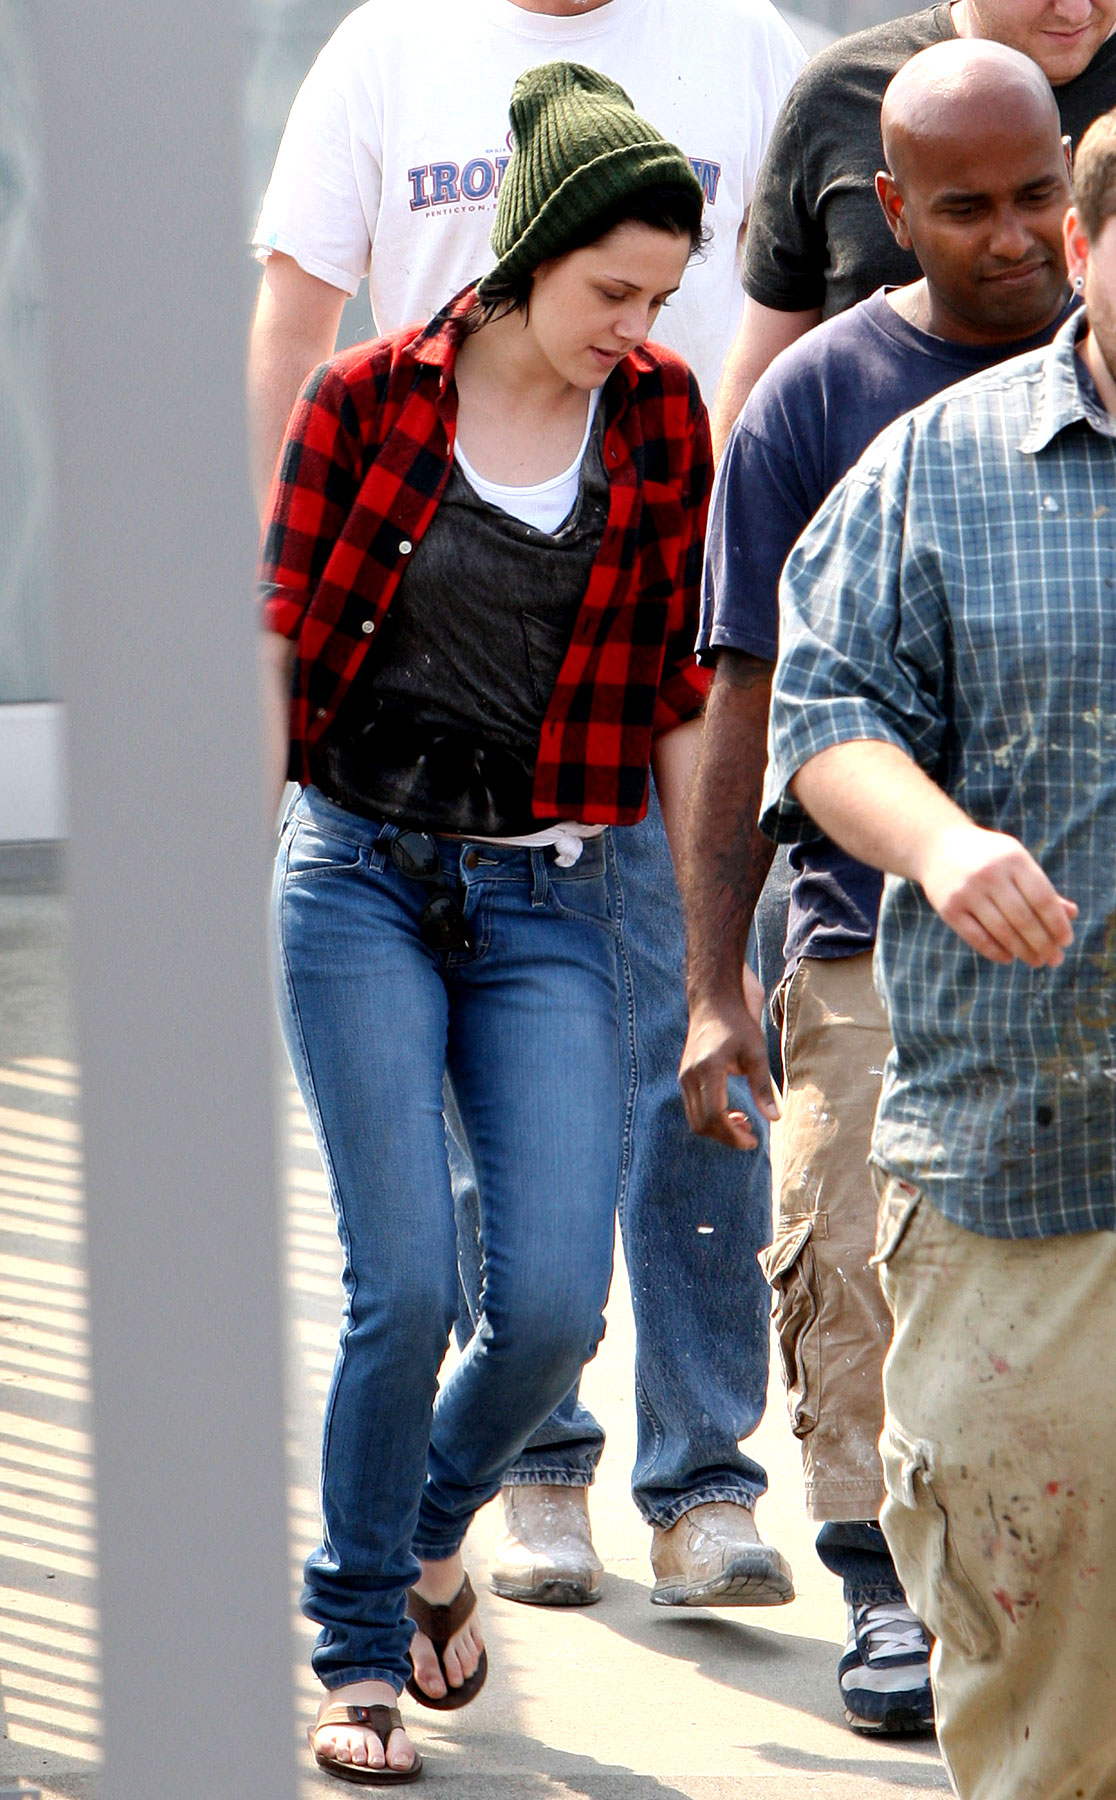 PHOTO GALLERY: Kristen Stewart Leaves the Hair Salon